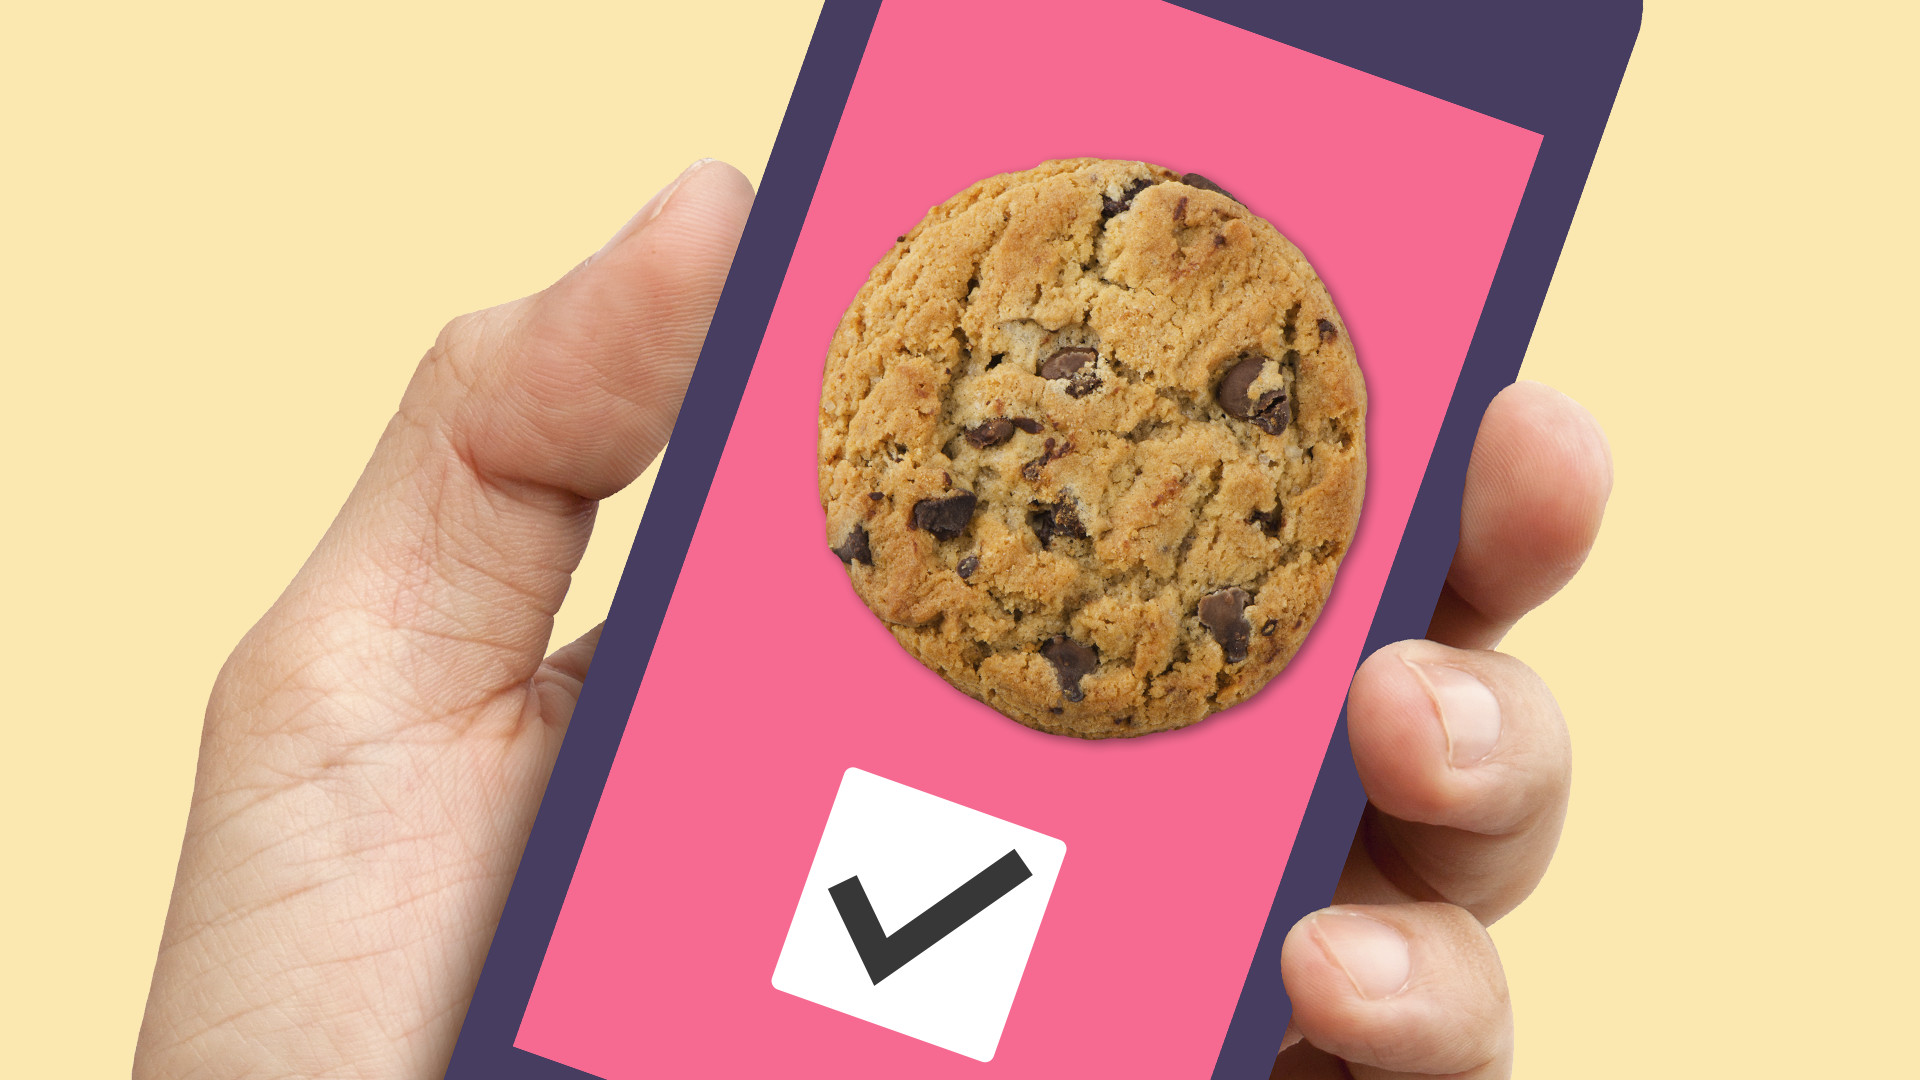 cookie-thumb-accept-2.jpg